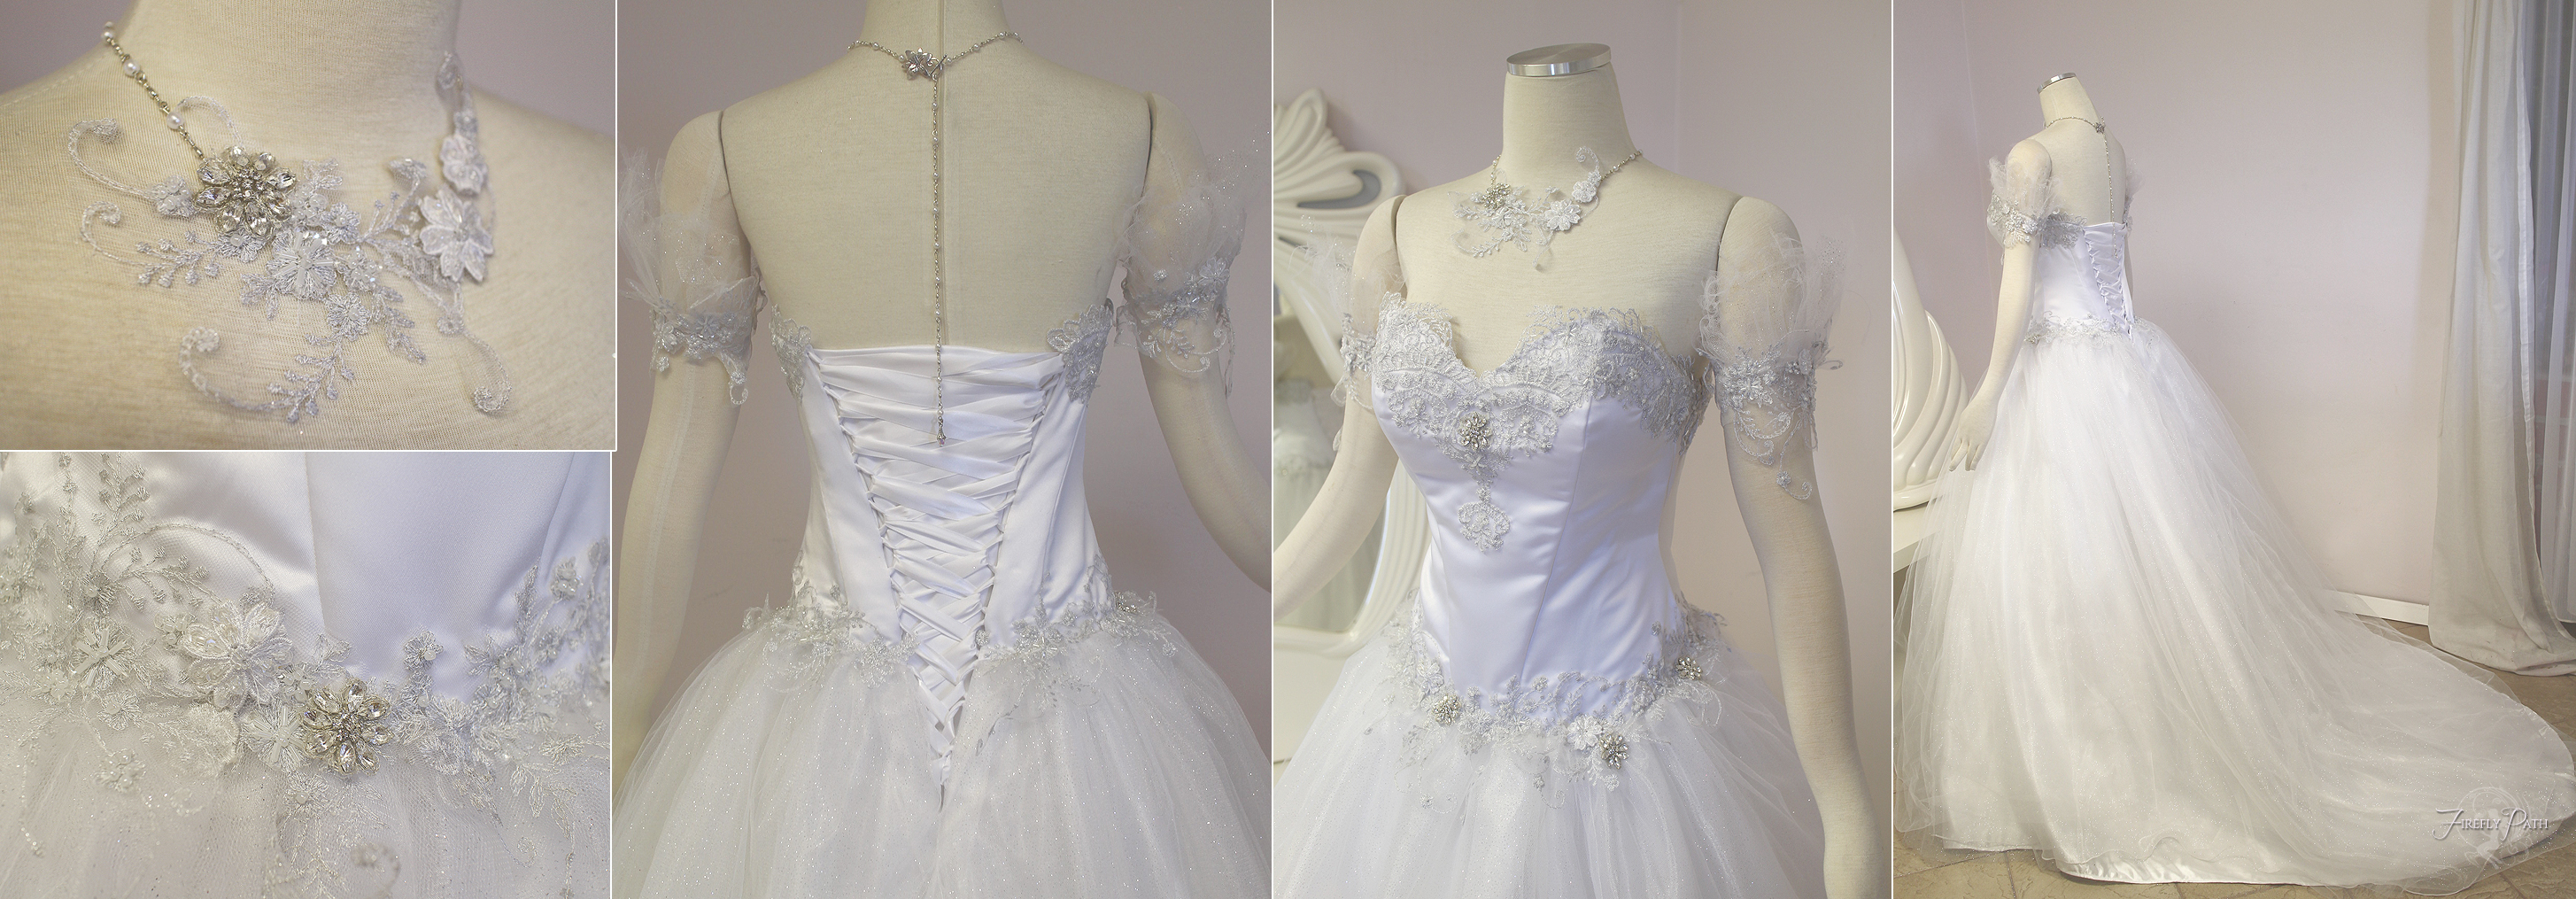 White and silver wedding gown by firefly path on deviantart for Silver and white wedding dresses